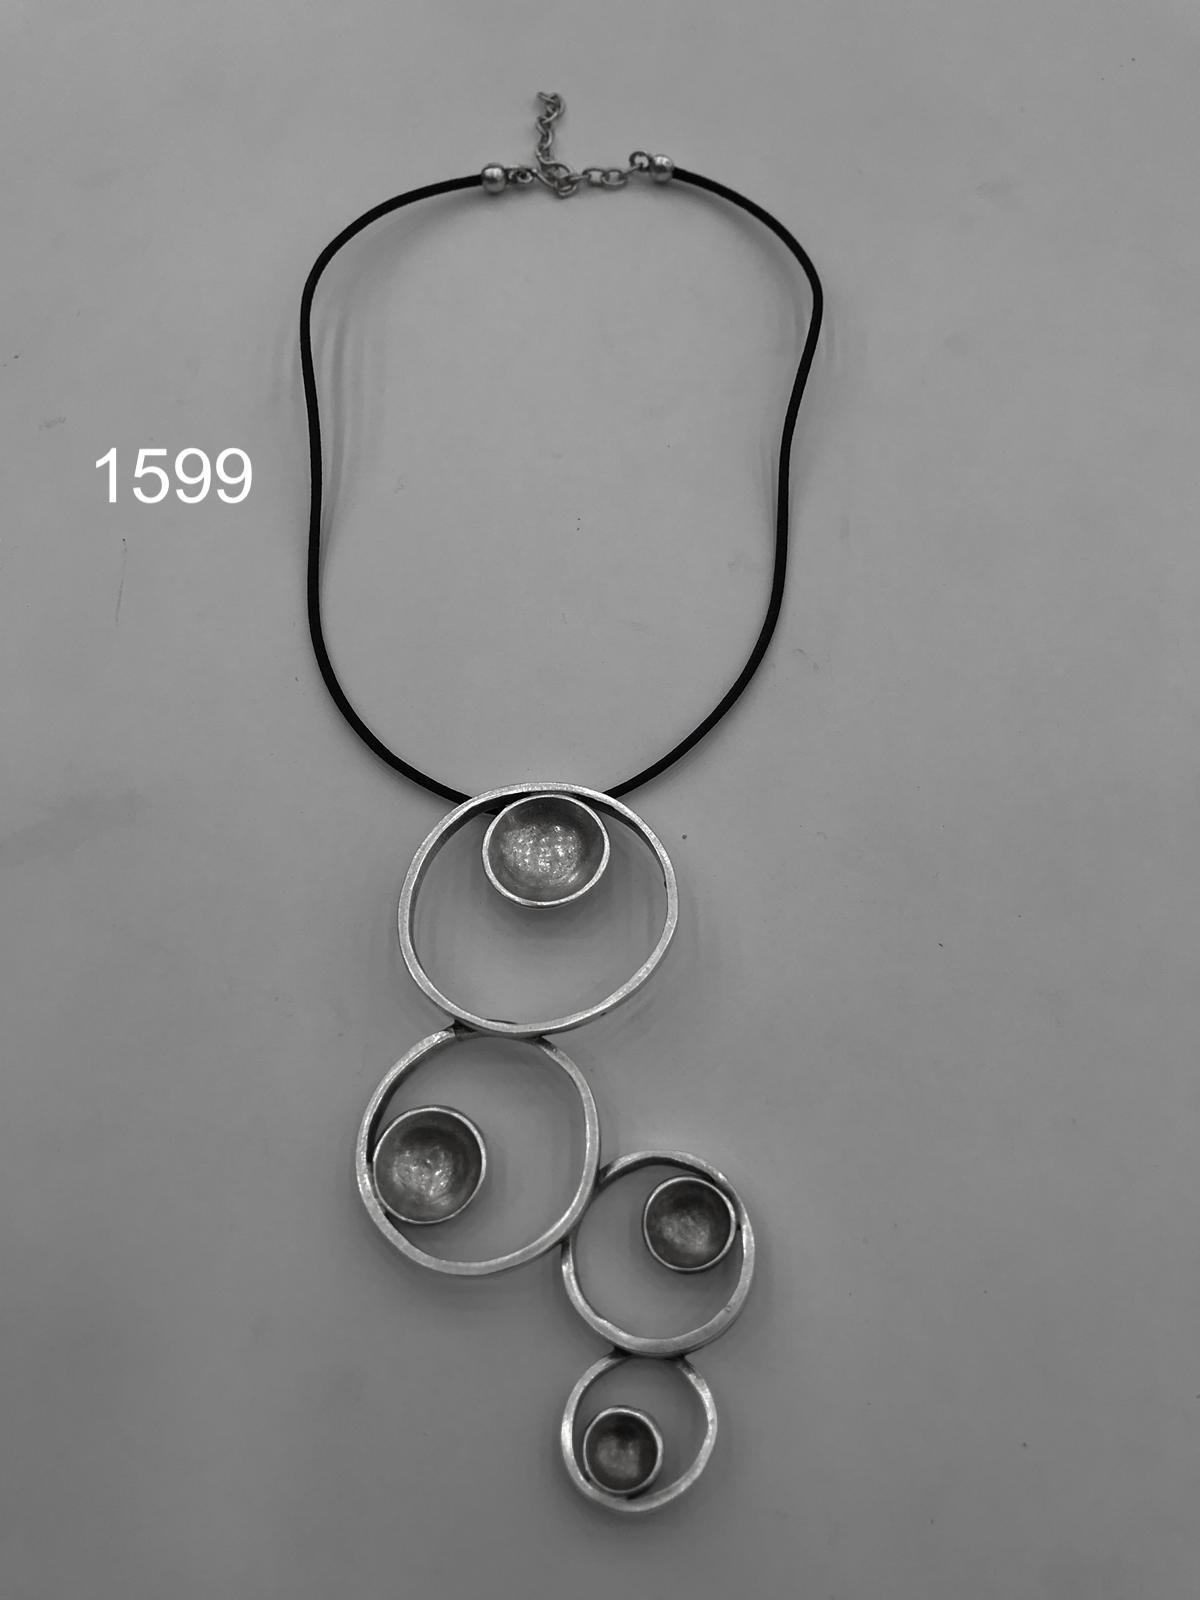 NECKLACE 1599